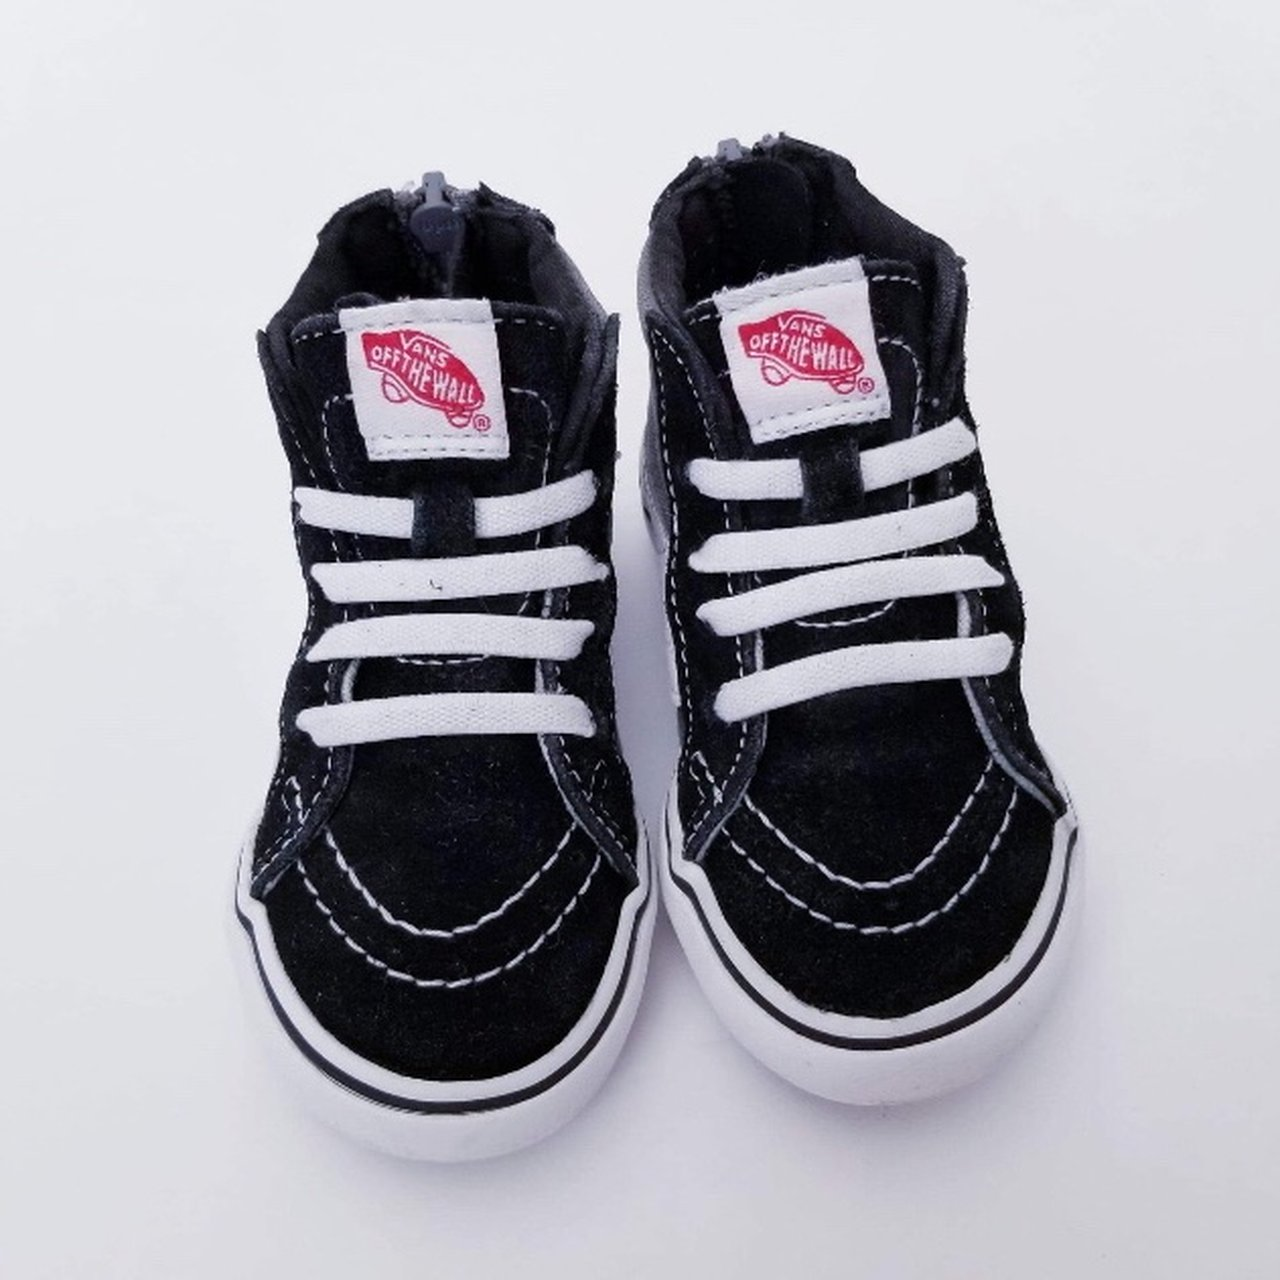 Toddler High Top Vans Size - 5.5 Toddlers Brand - - a on - Depop aa63747e5